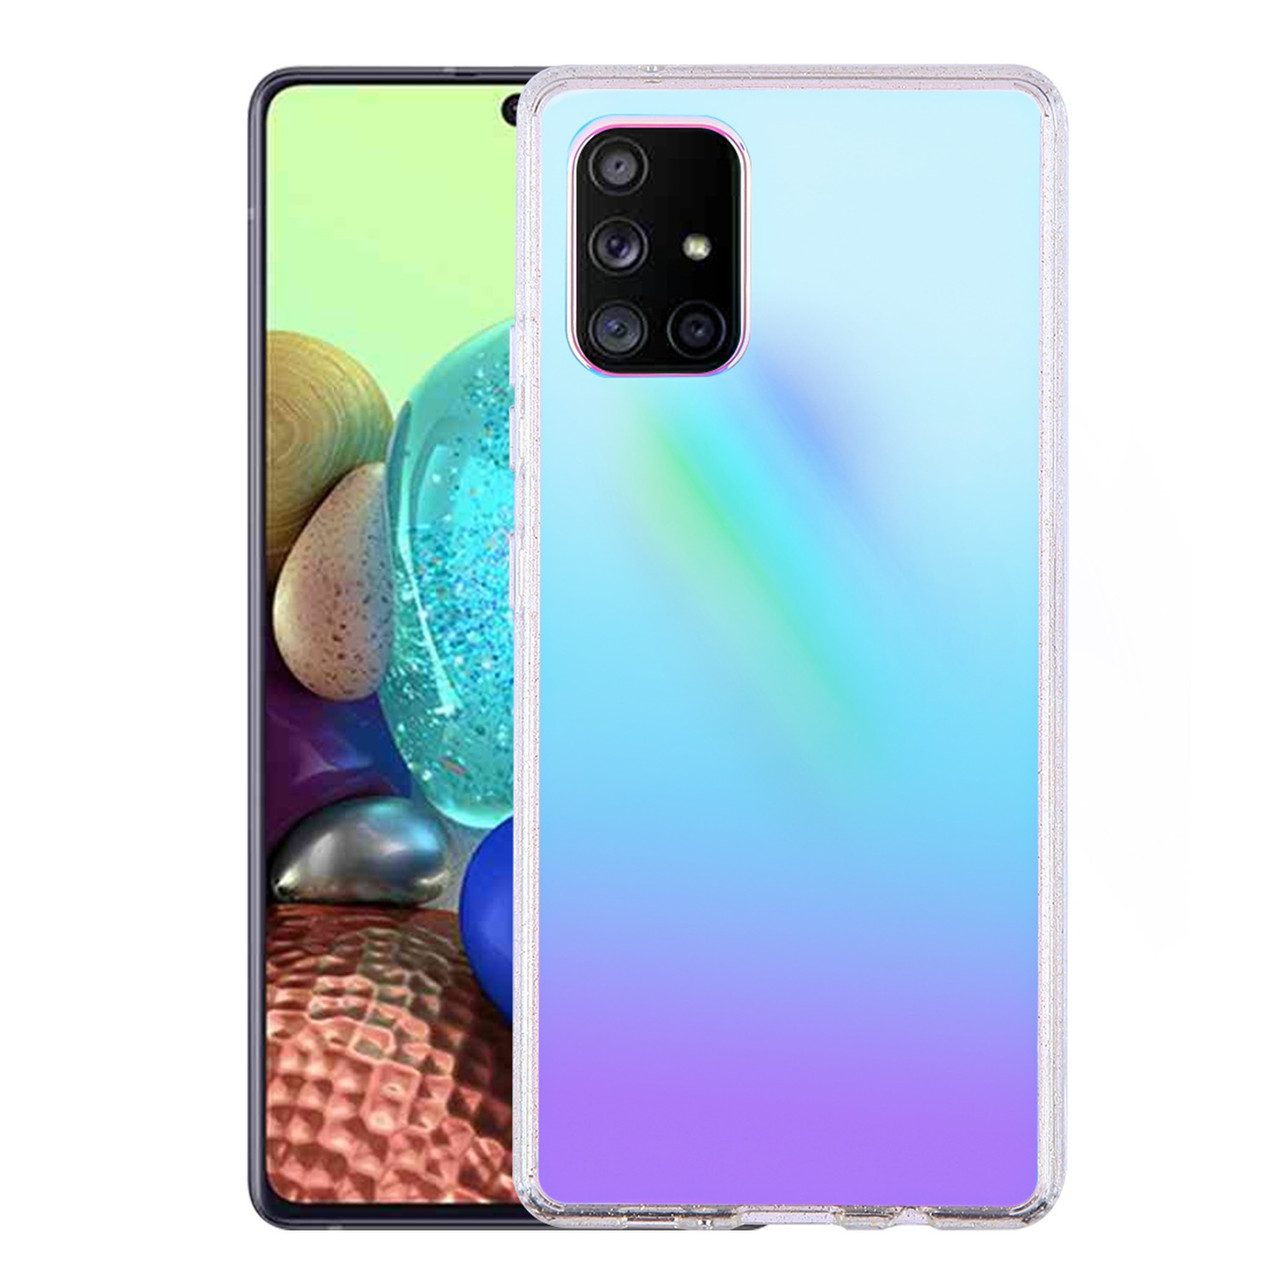 Iridescent Color Holographic Fusion Case For Samsung Galaxy A71 5g Hd Accessory